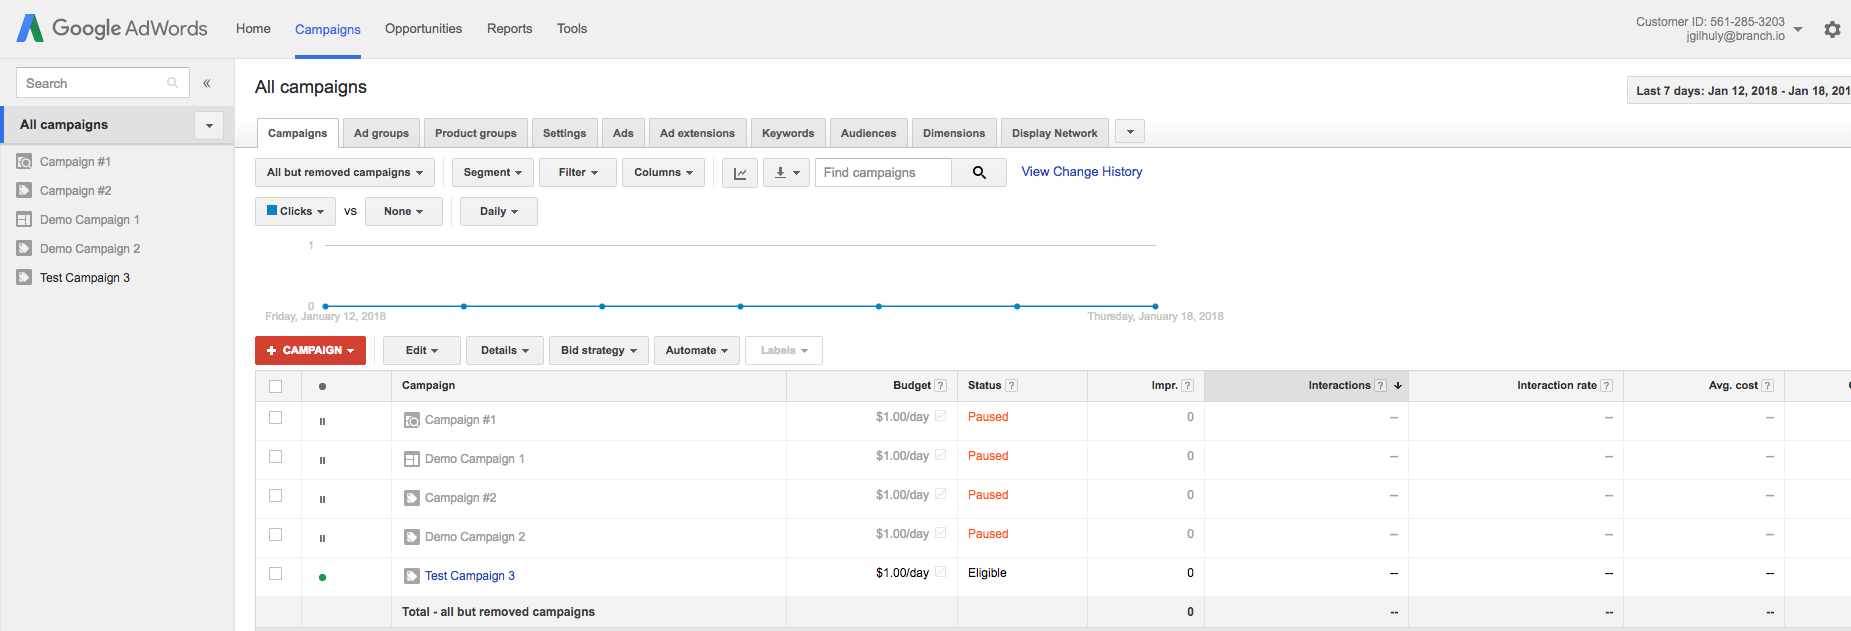 AdWords Campaign View